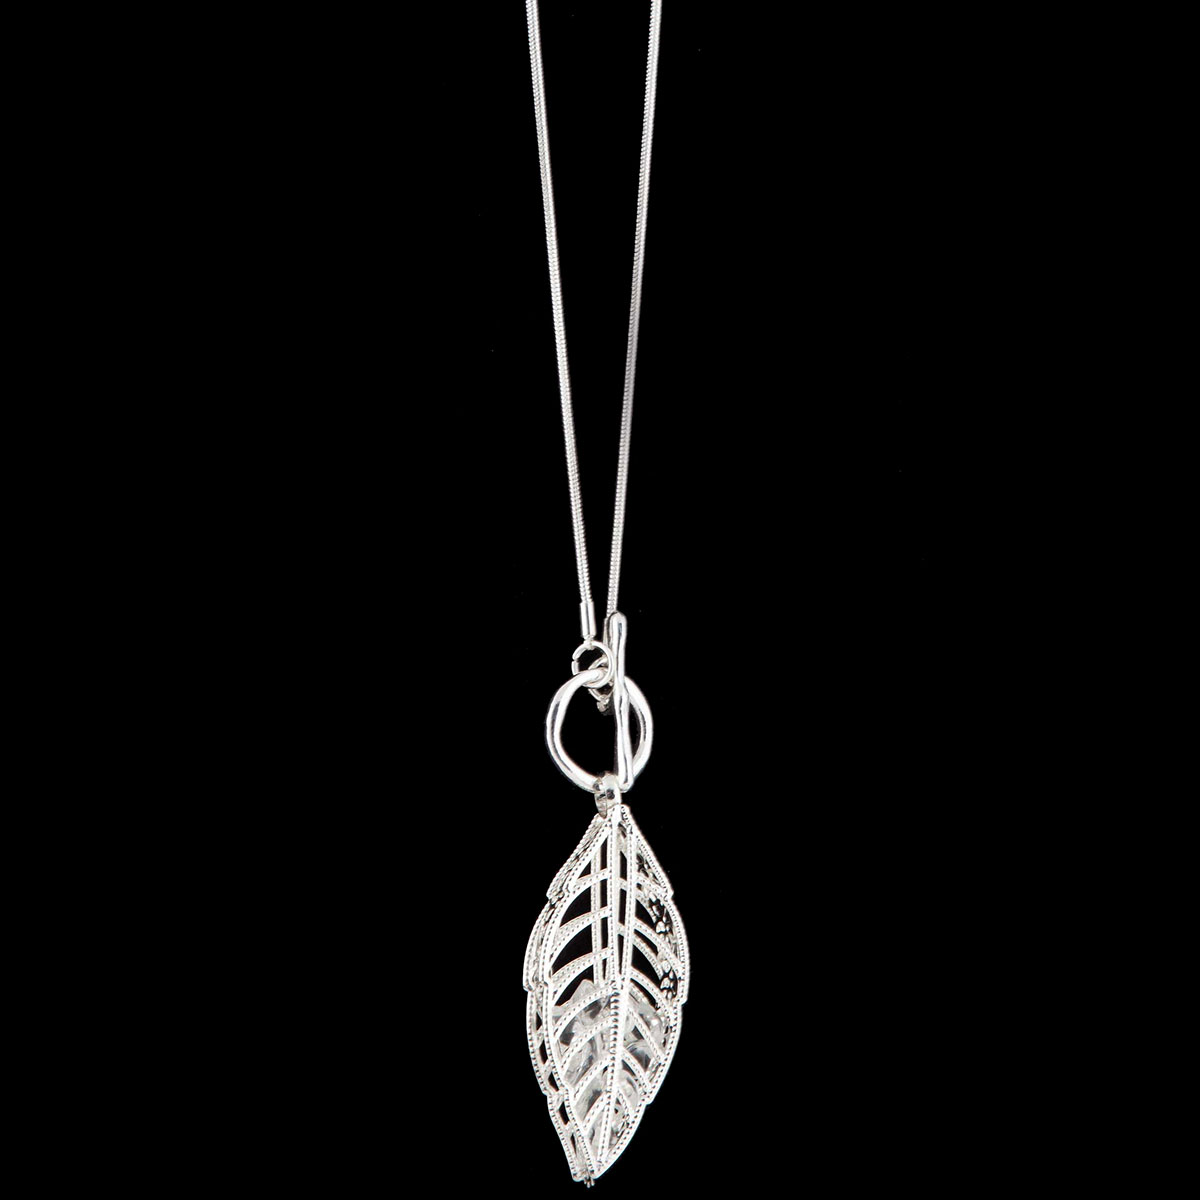 Silver Leaf with Front Toggle Clasp on Chain Necklace